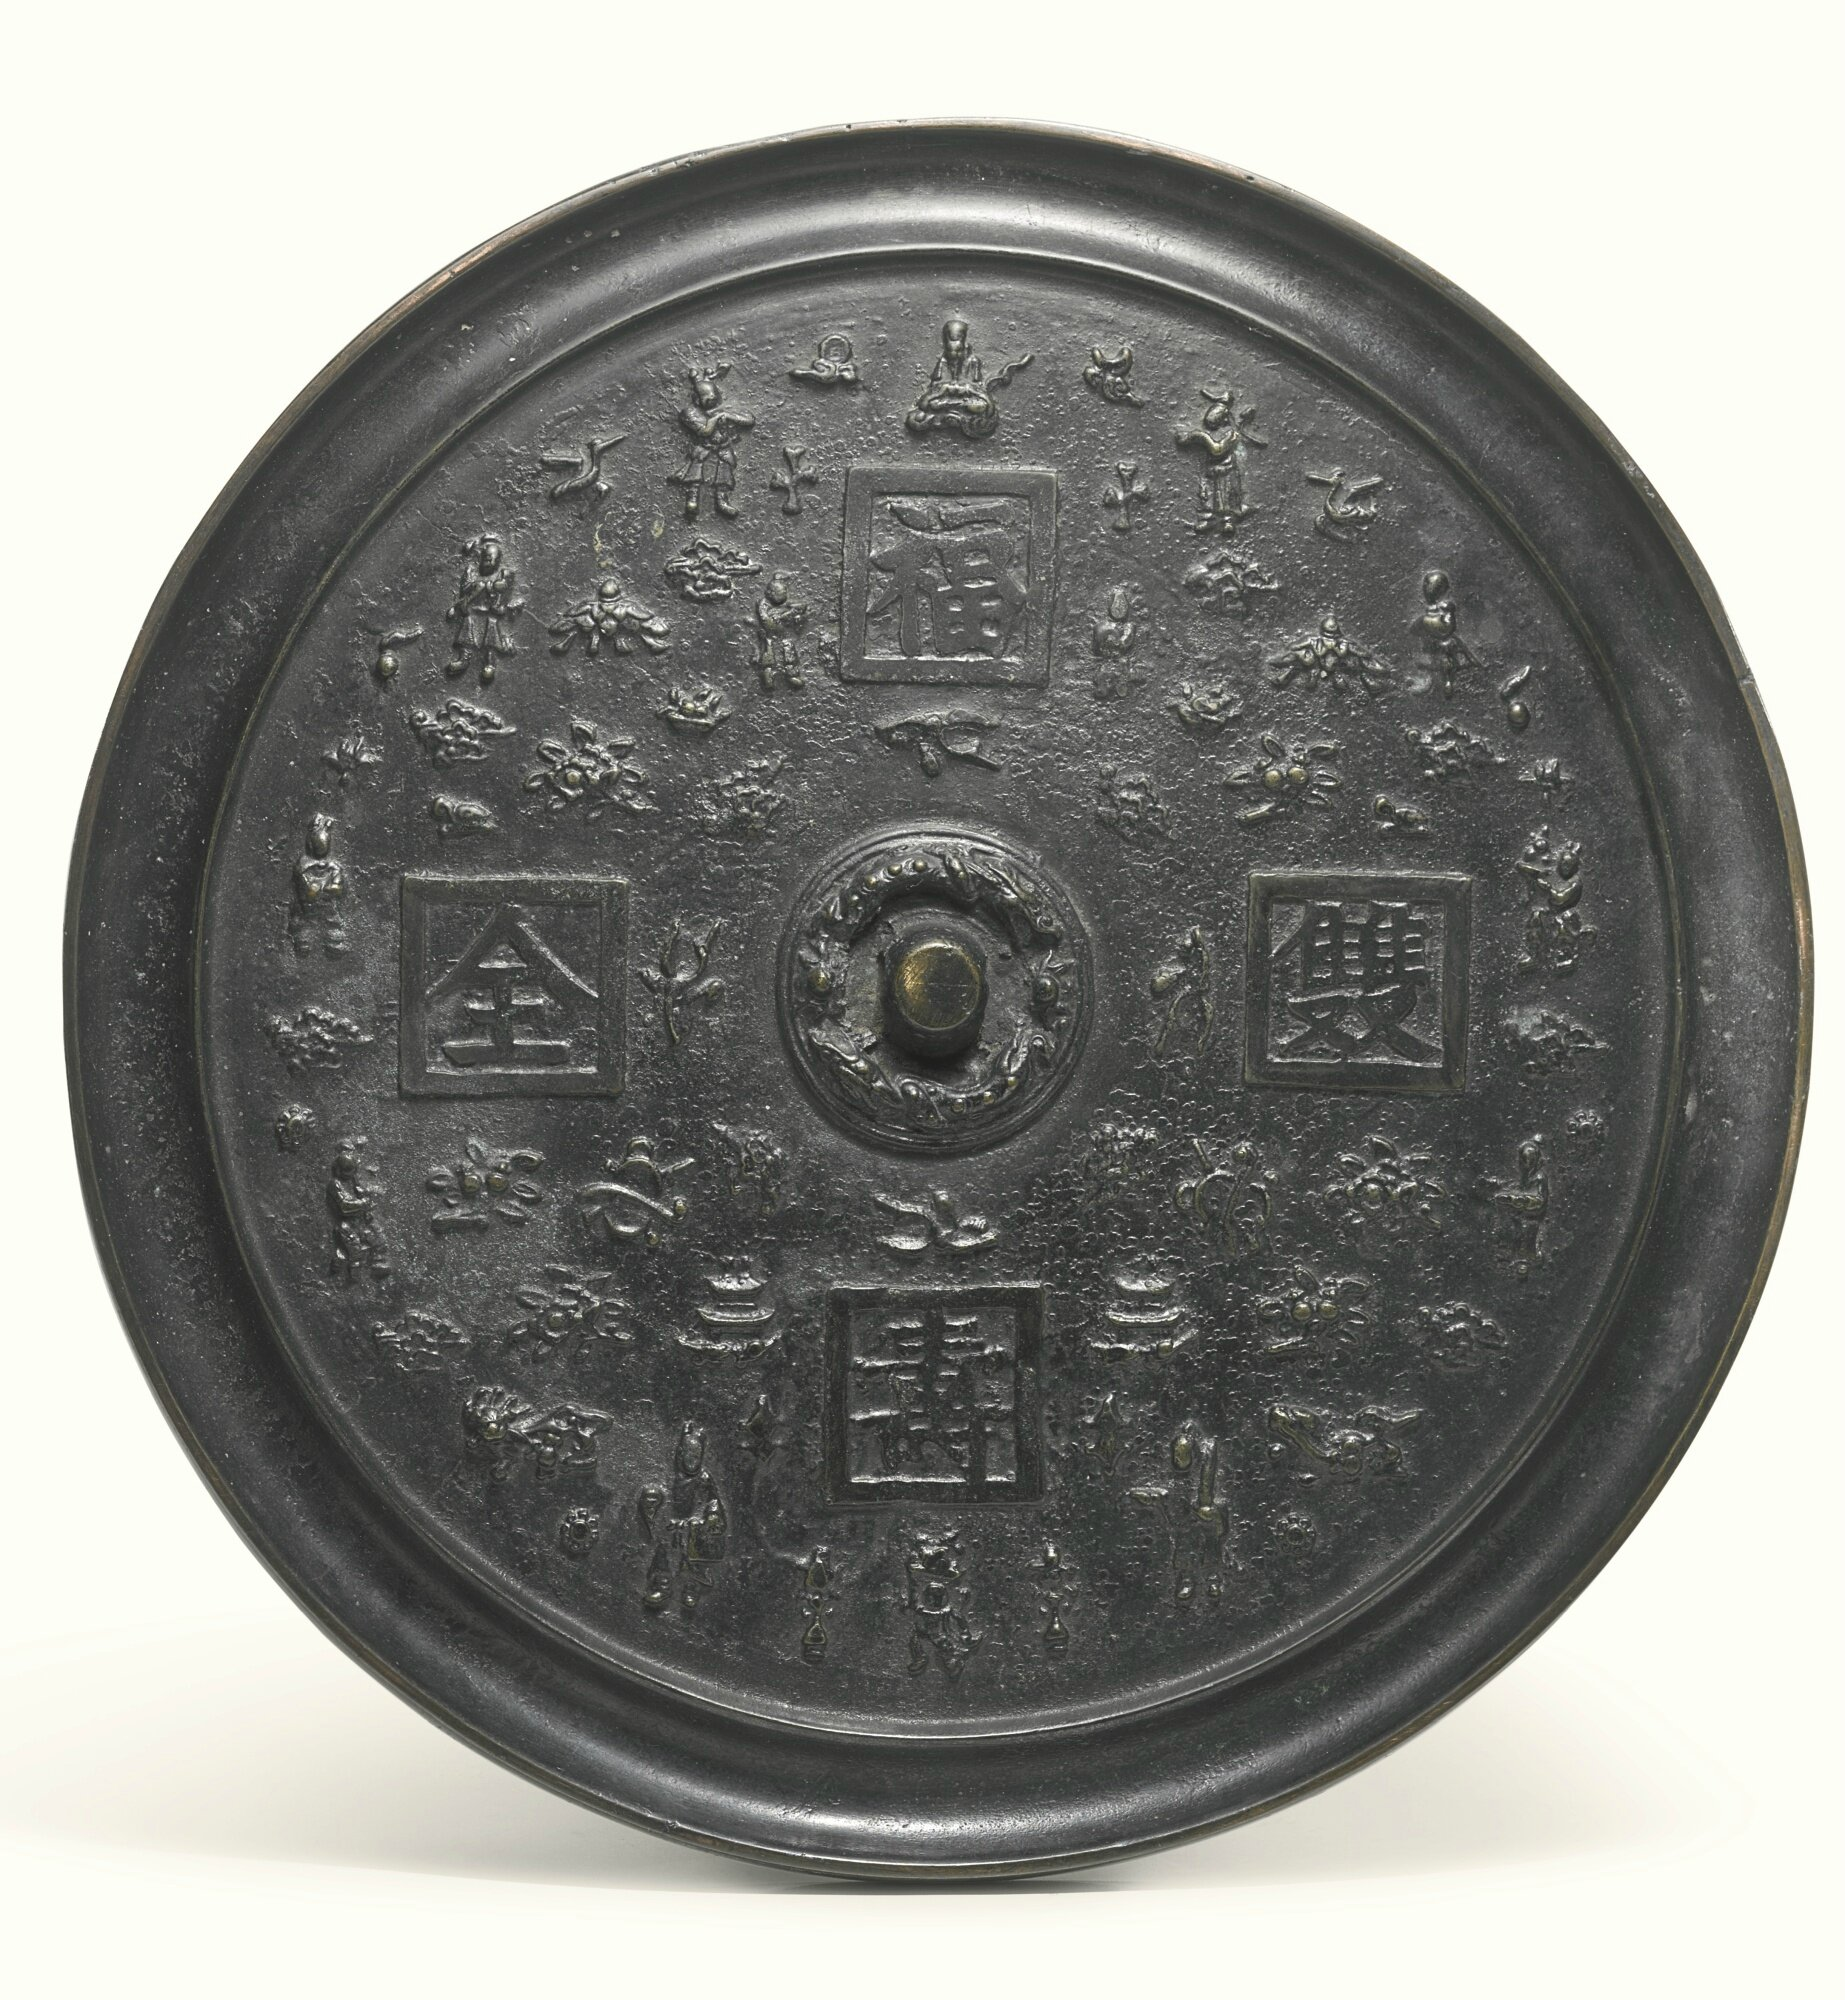 A large Chinese bronze mirror, 17th-18th century